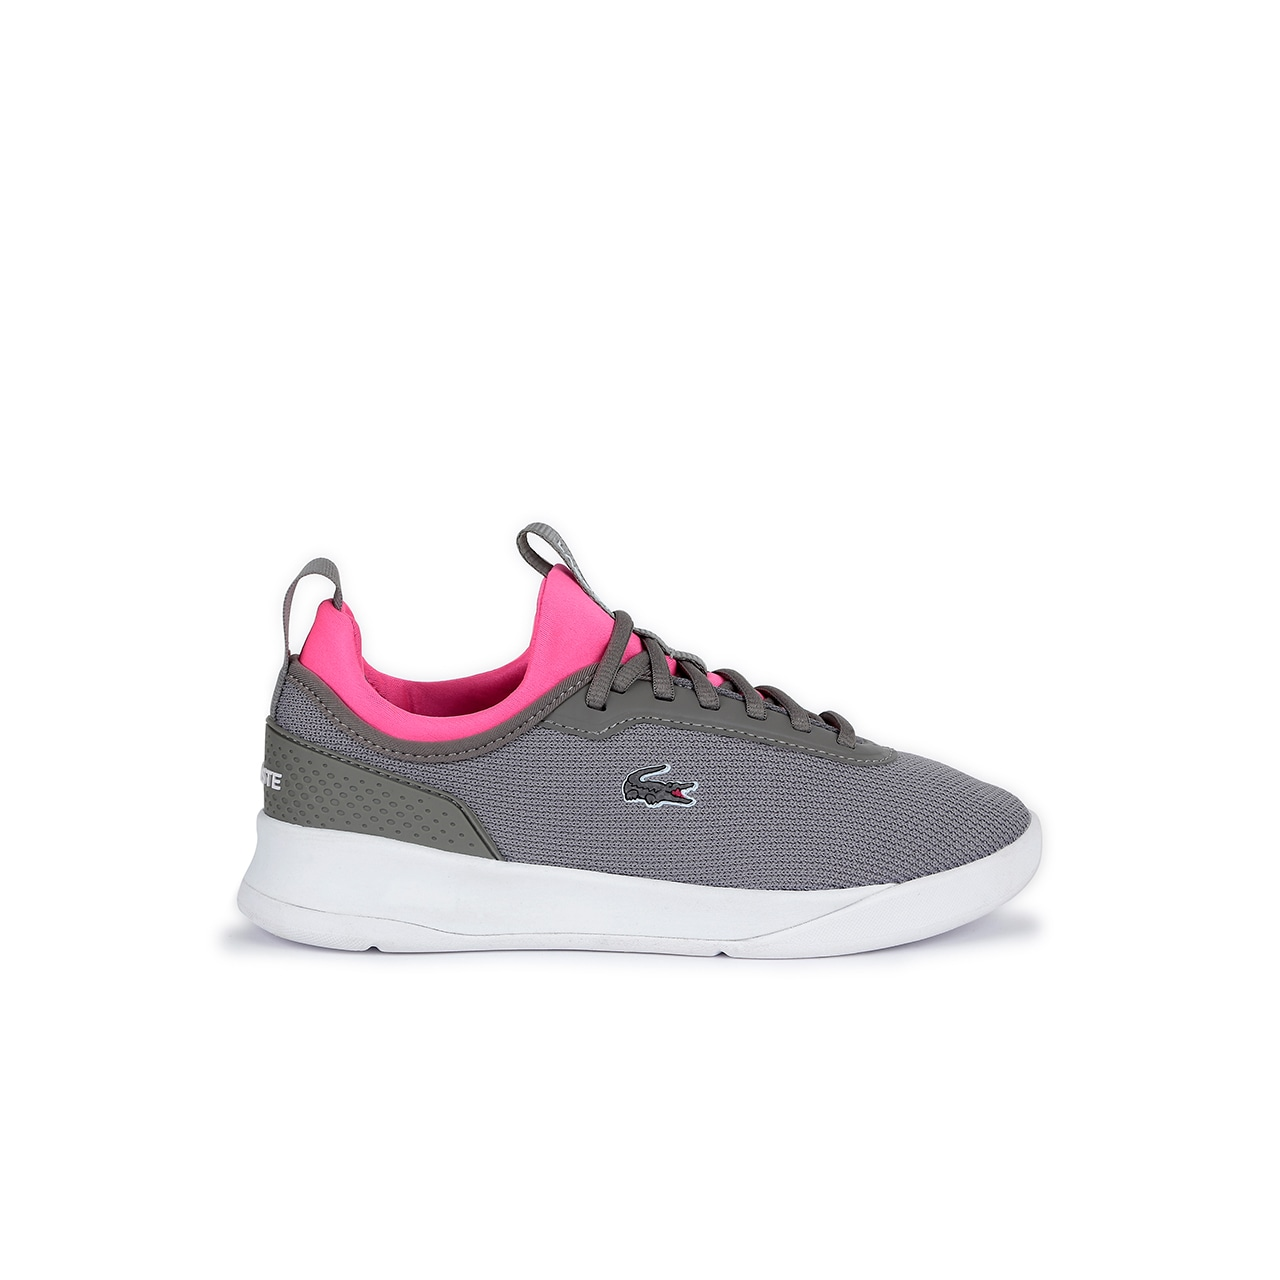 Women's LT Spirit Textile Sneakers